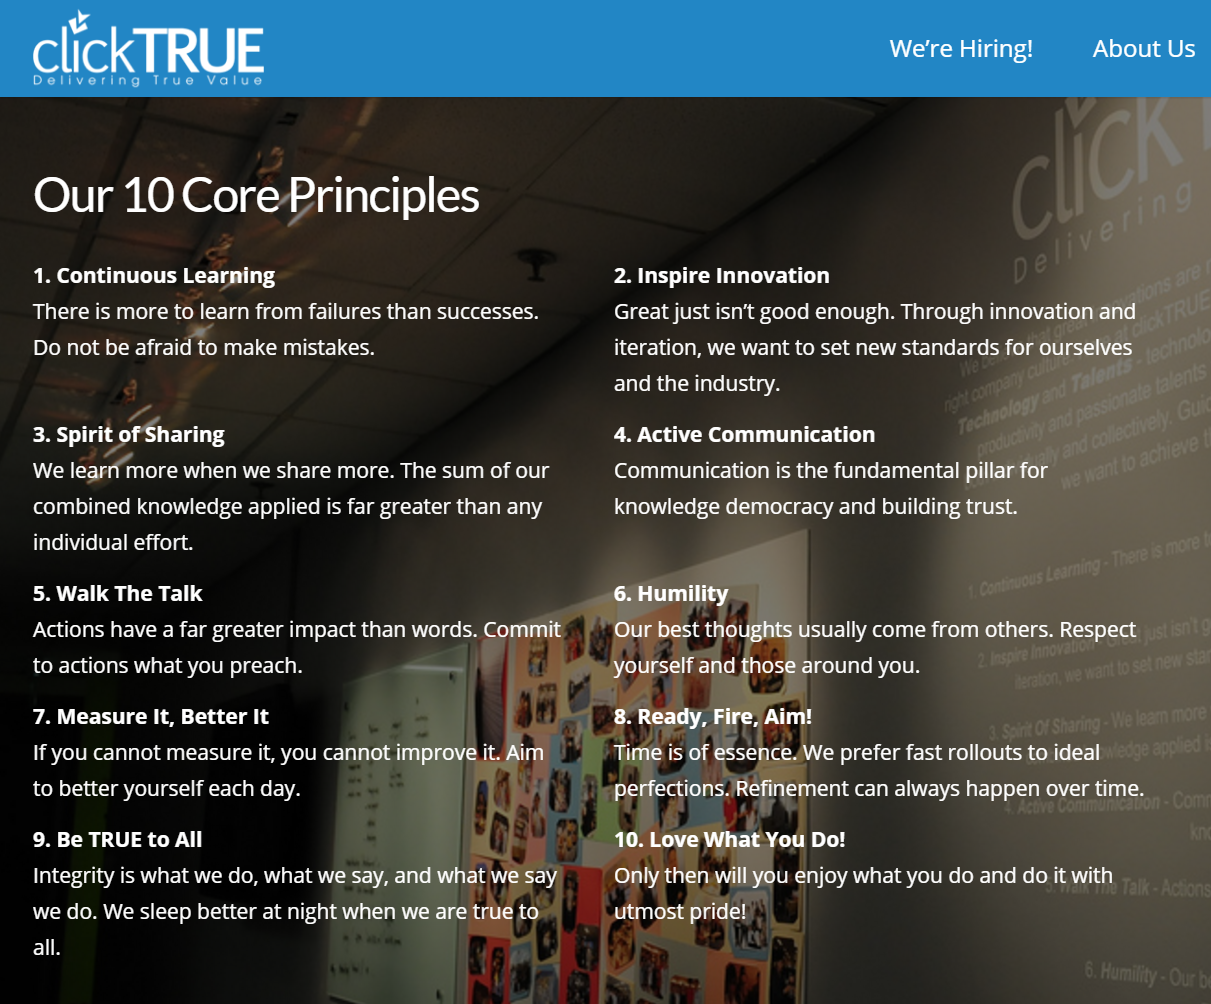 clicktrue-core-values